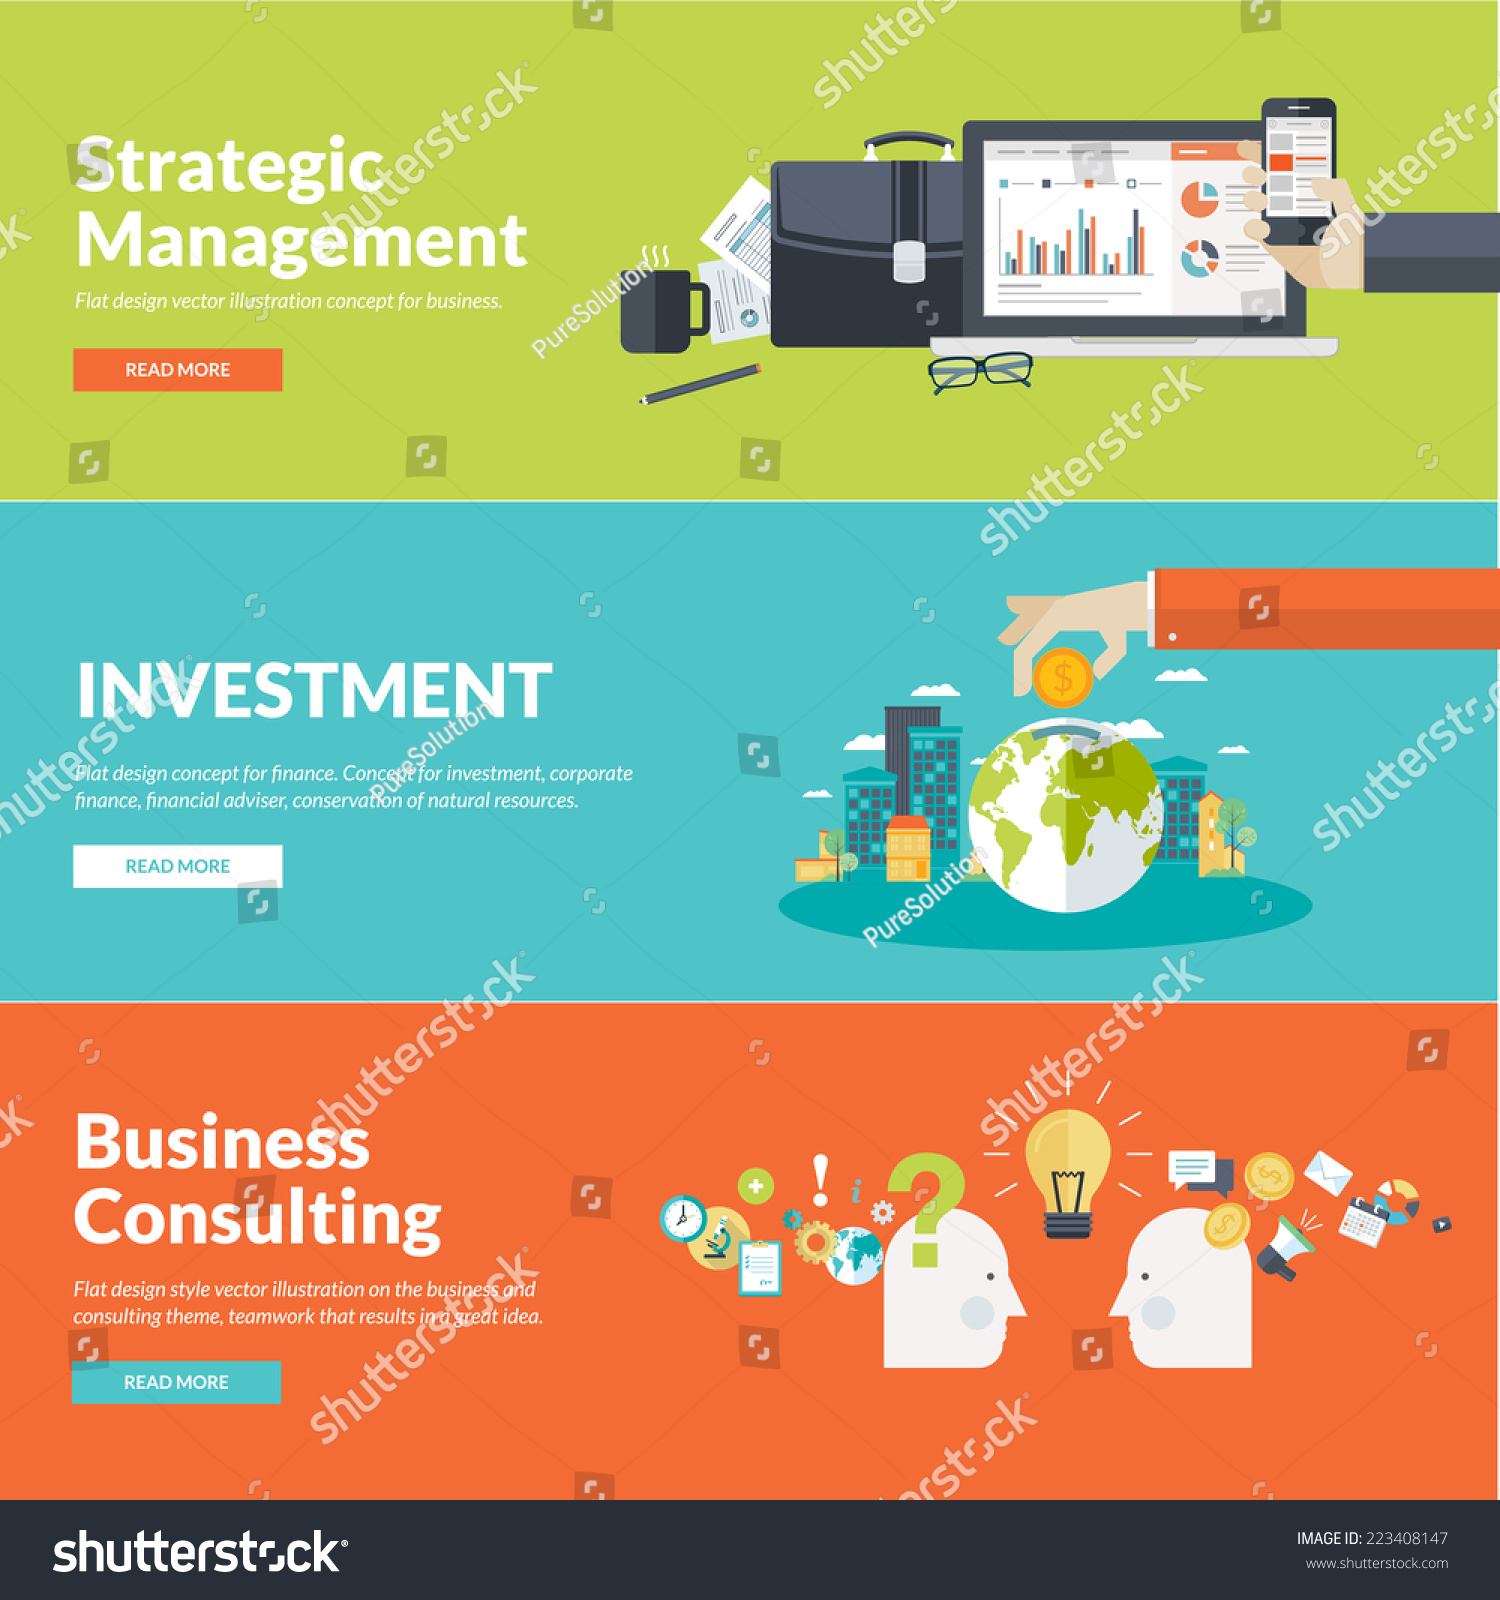 Promotional Images Management Stock Vector Flat Design Concepts For Business Finance